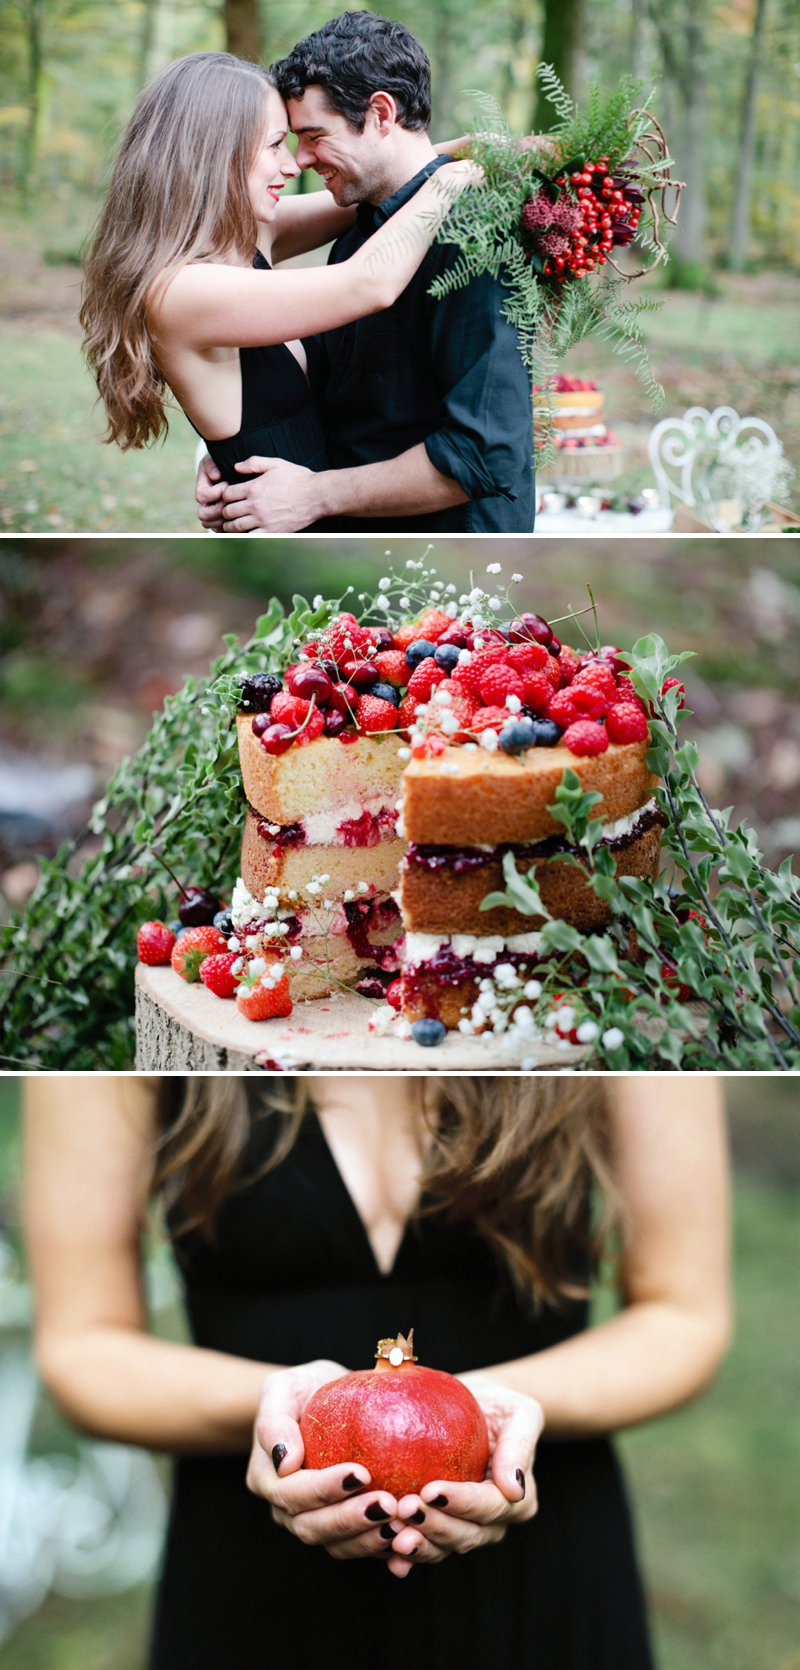 Romantic Prosecco Picnic Engagement Shoot In The Brecon Beacons Image By Millie & Belle Photography 4